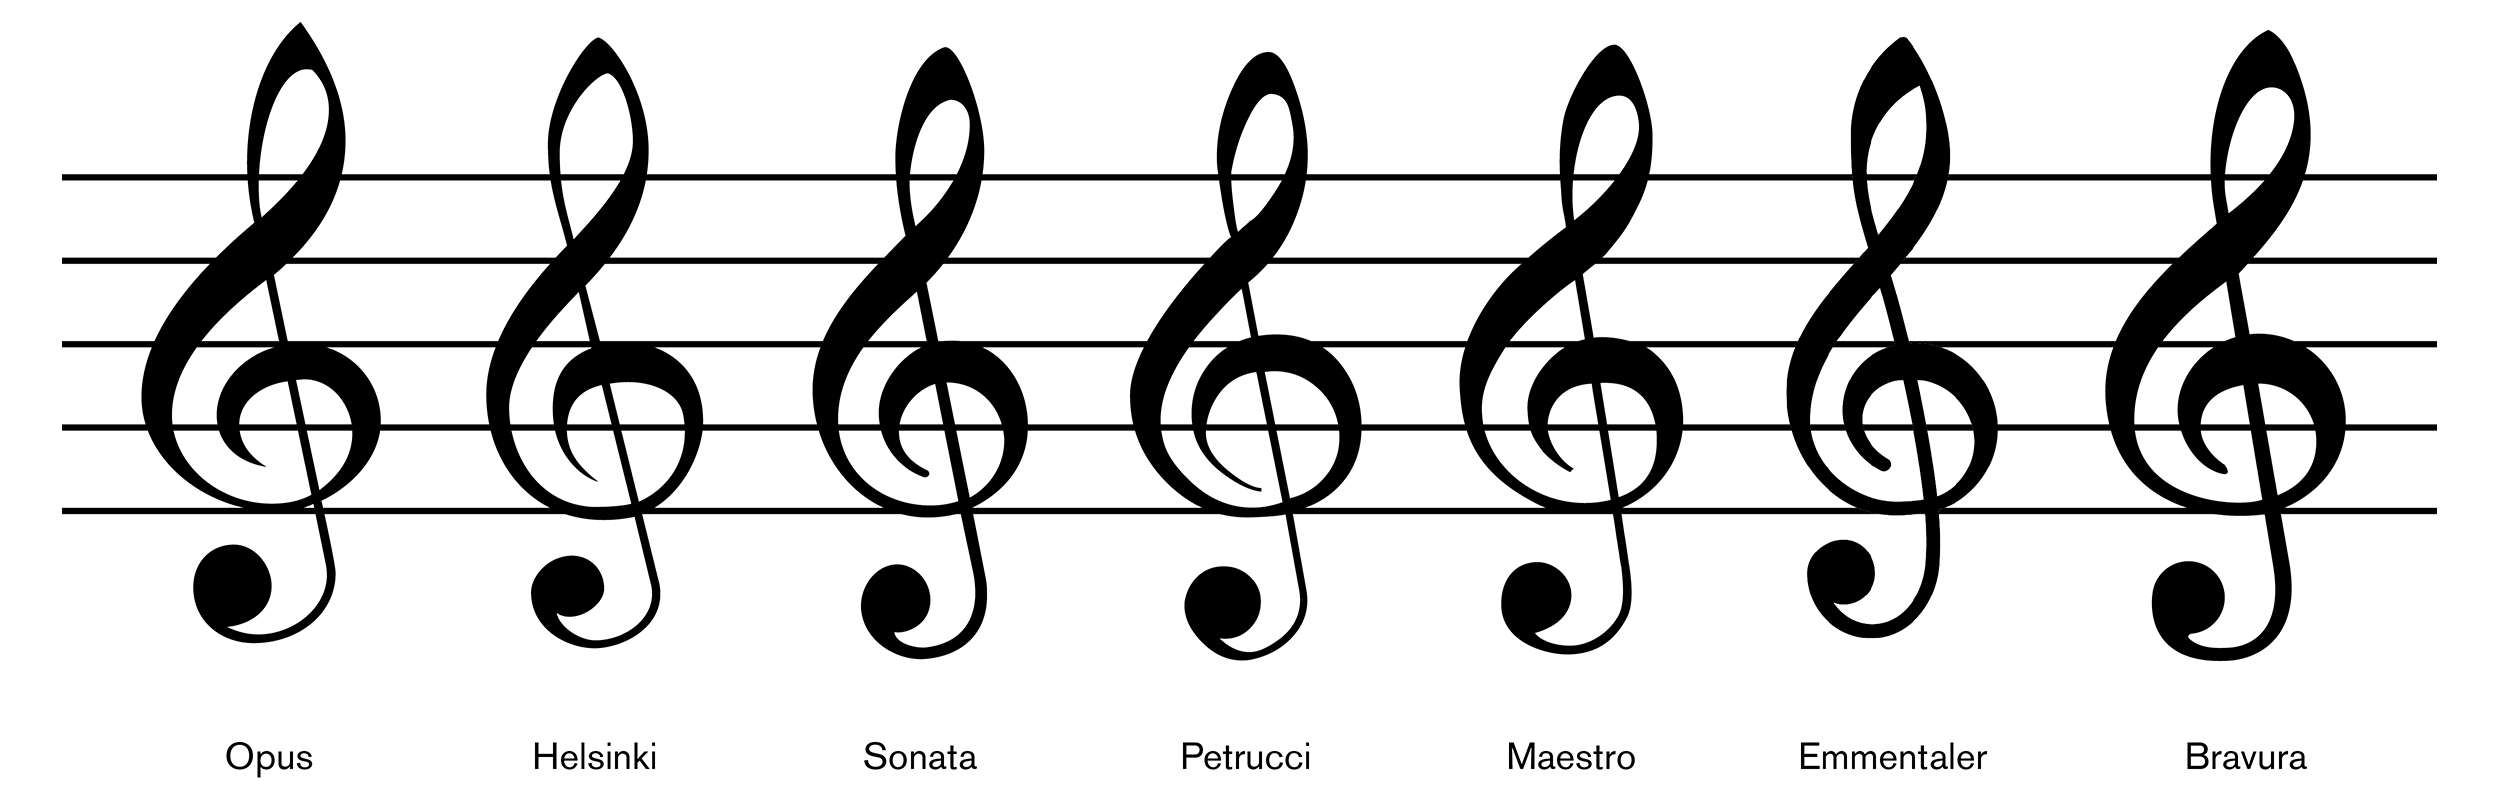 Musical notes symbols and names clipart panda free clipart images musical20notes20symbols20and20names biocorpaavc Image collections